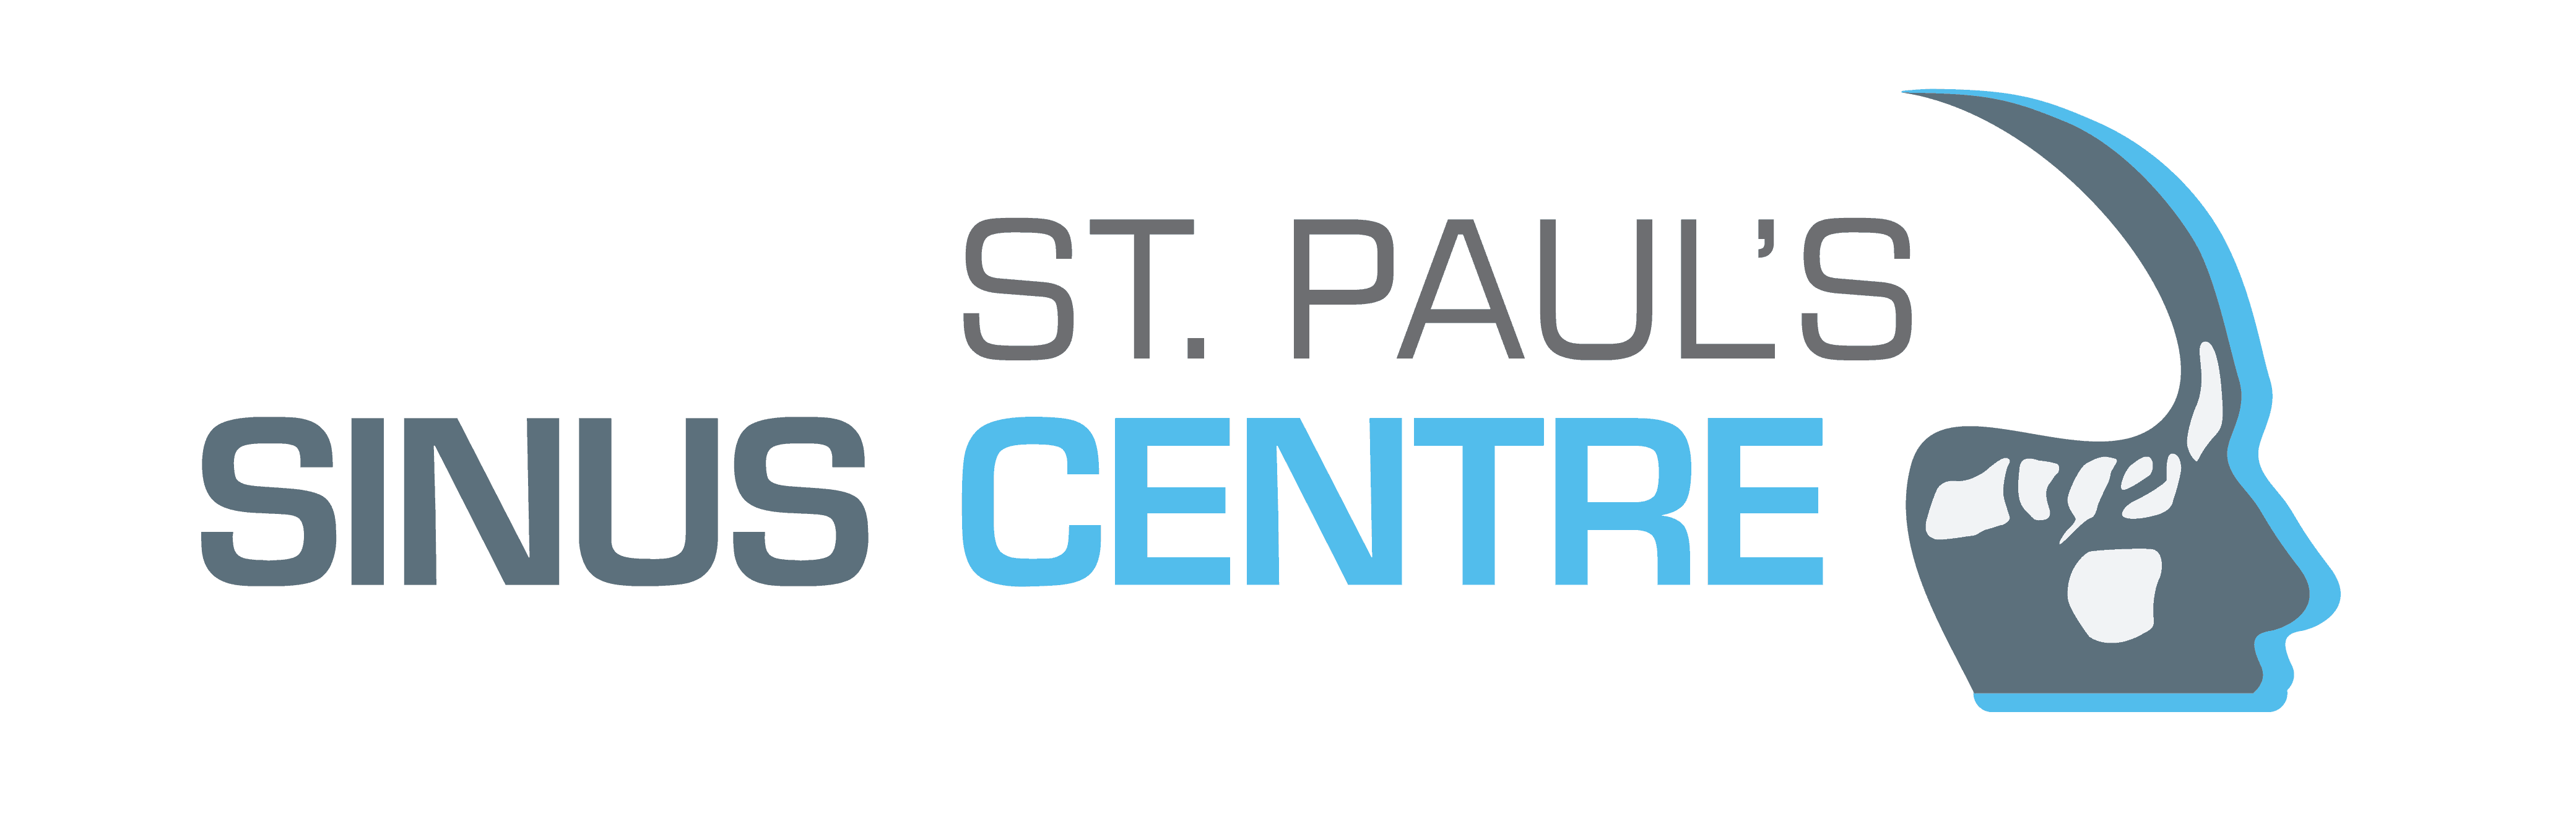 St. Paul's Sinus Centre (SPSC)